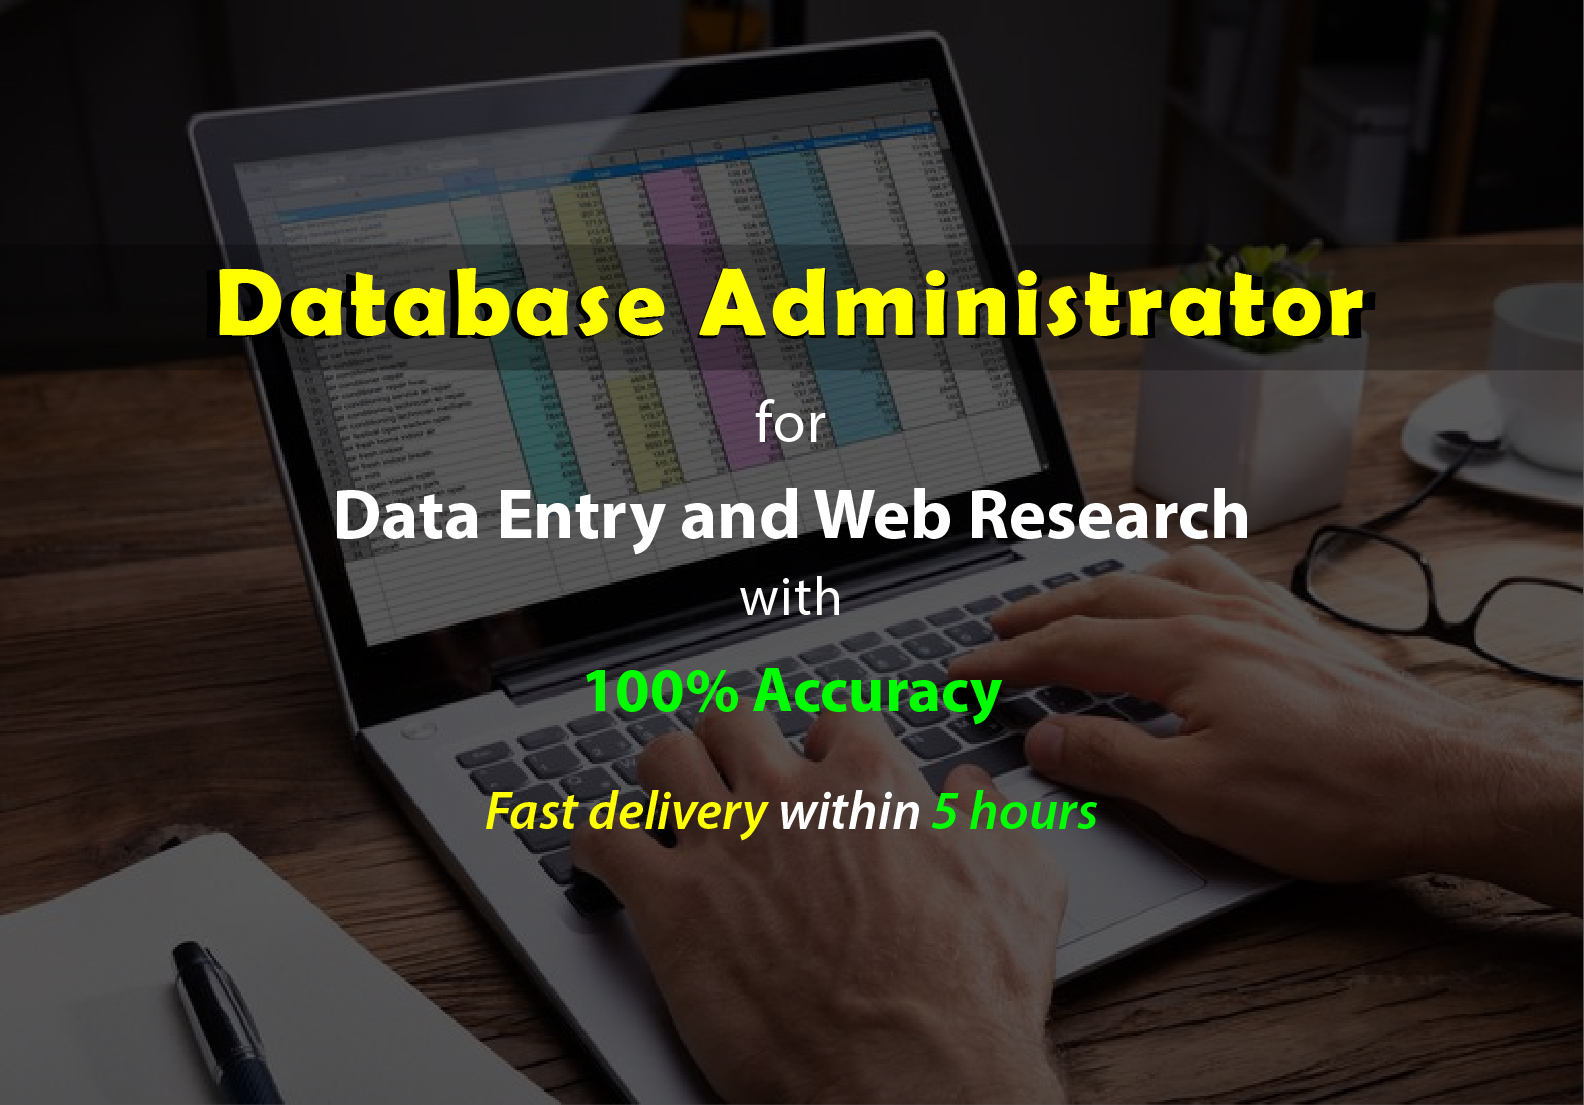 Hire Professional Database Administrator for Data Entry and Web Research